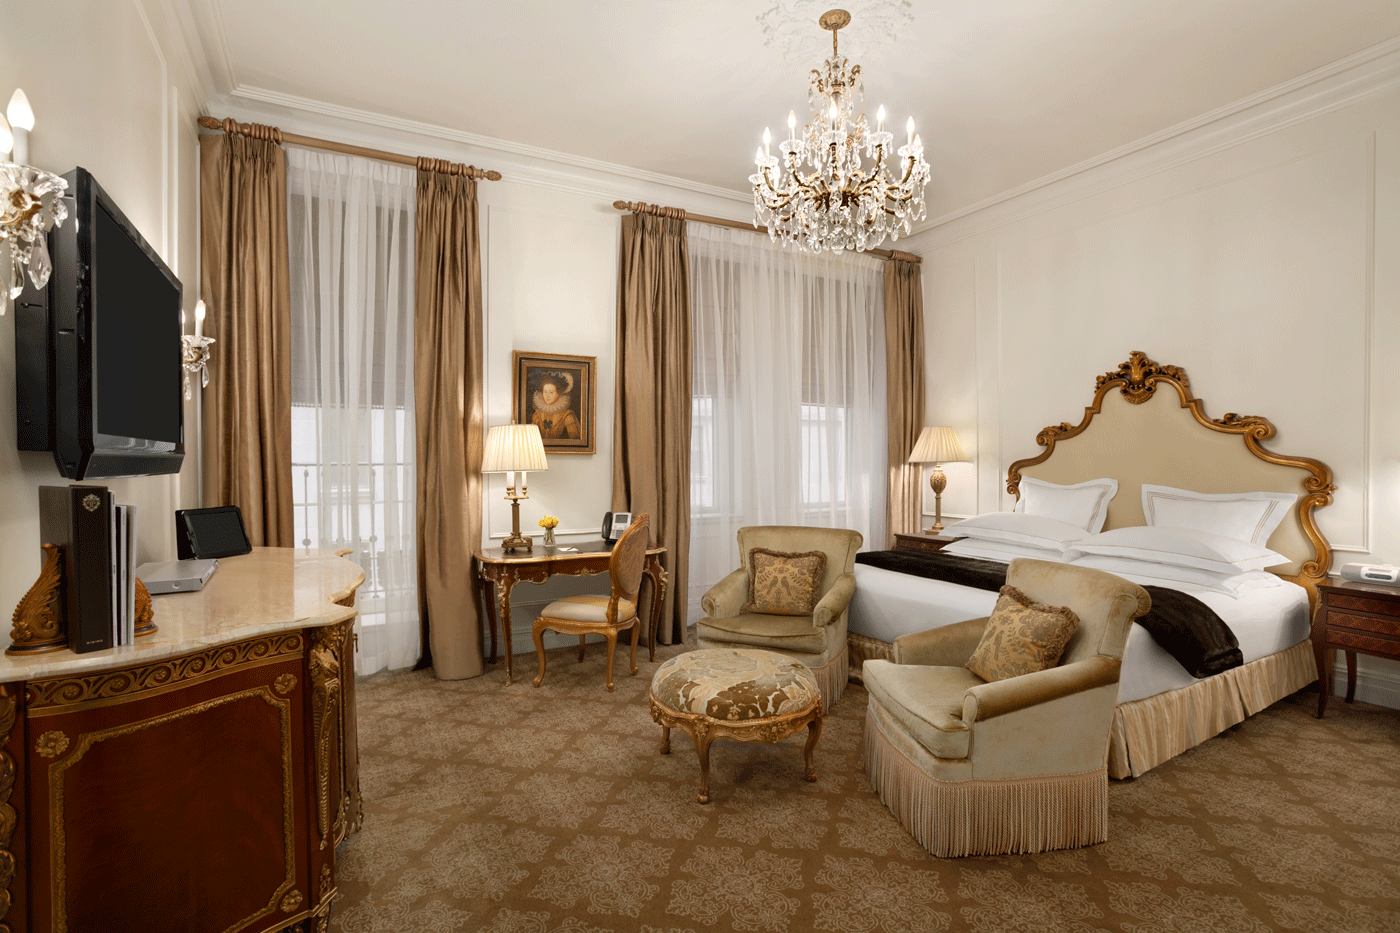 New York Plaza Vs Ritz Paris Hotel Classy And Fabulous Way Of Living Nyc Rooms Luxury Bedroom Suite Luxurious Bedrooms